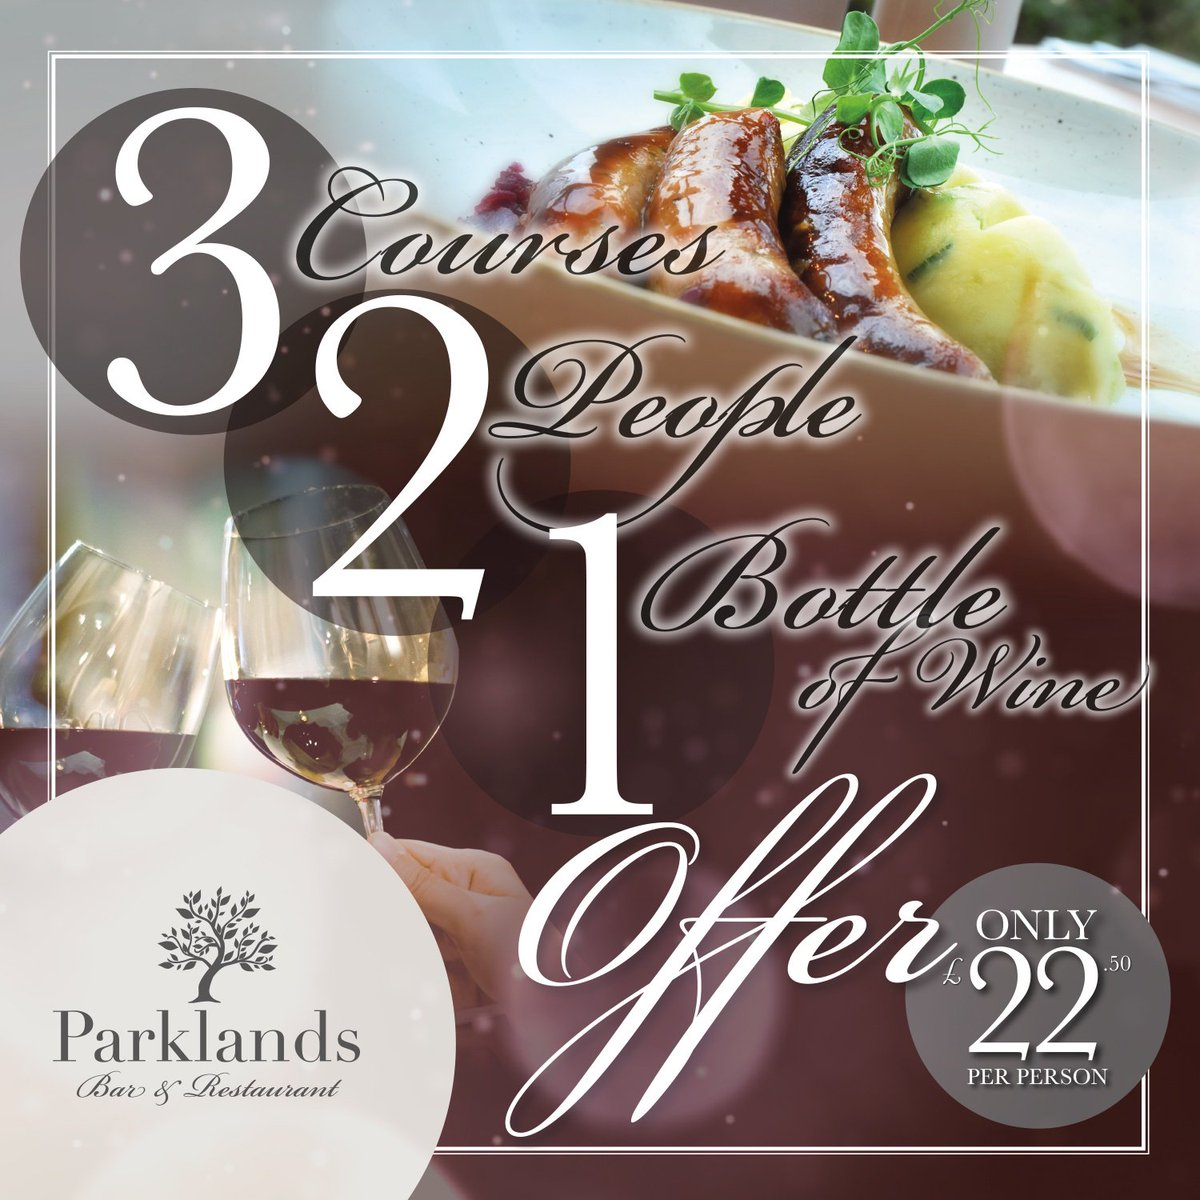 Indulge in our latest offer of   🍽 3 courses for  👱‍♂️ 2 people with  🍷 1 bottle of wine   For only £22.50 each! Book your meal today http://socsi.in/rYnq8